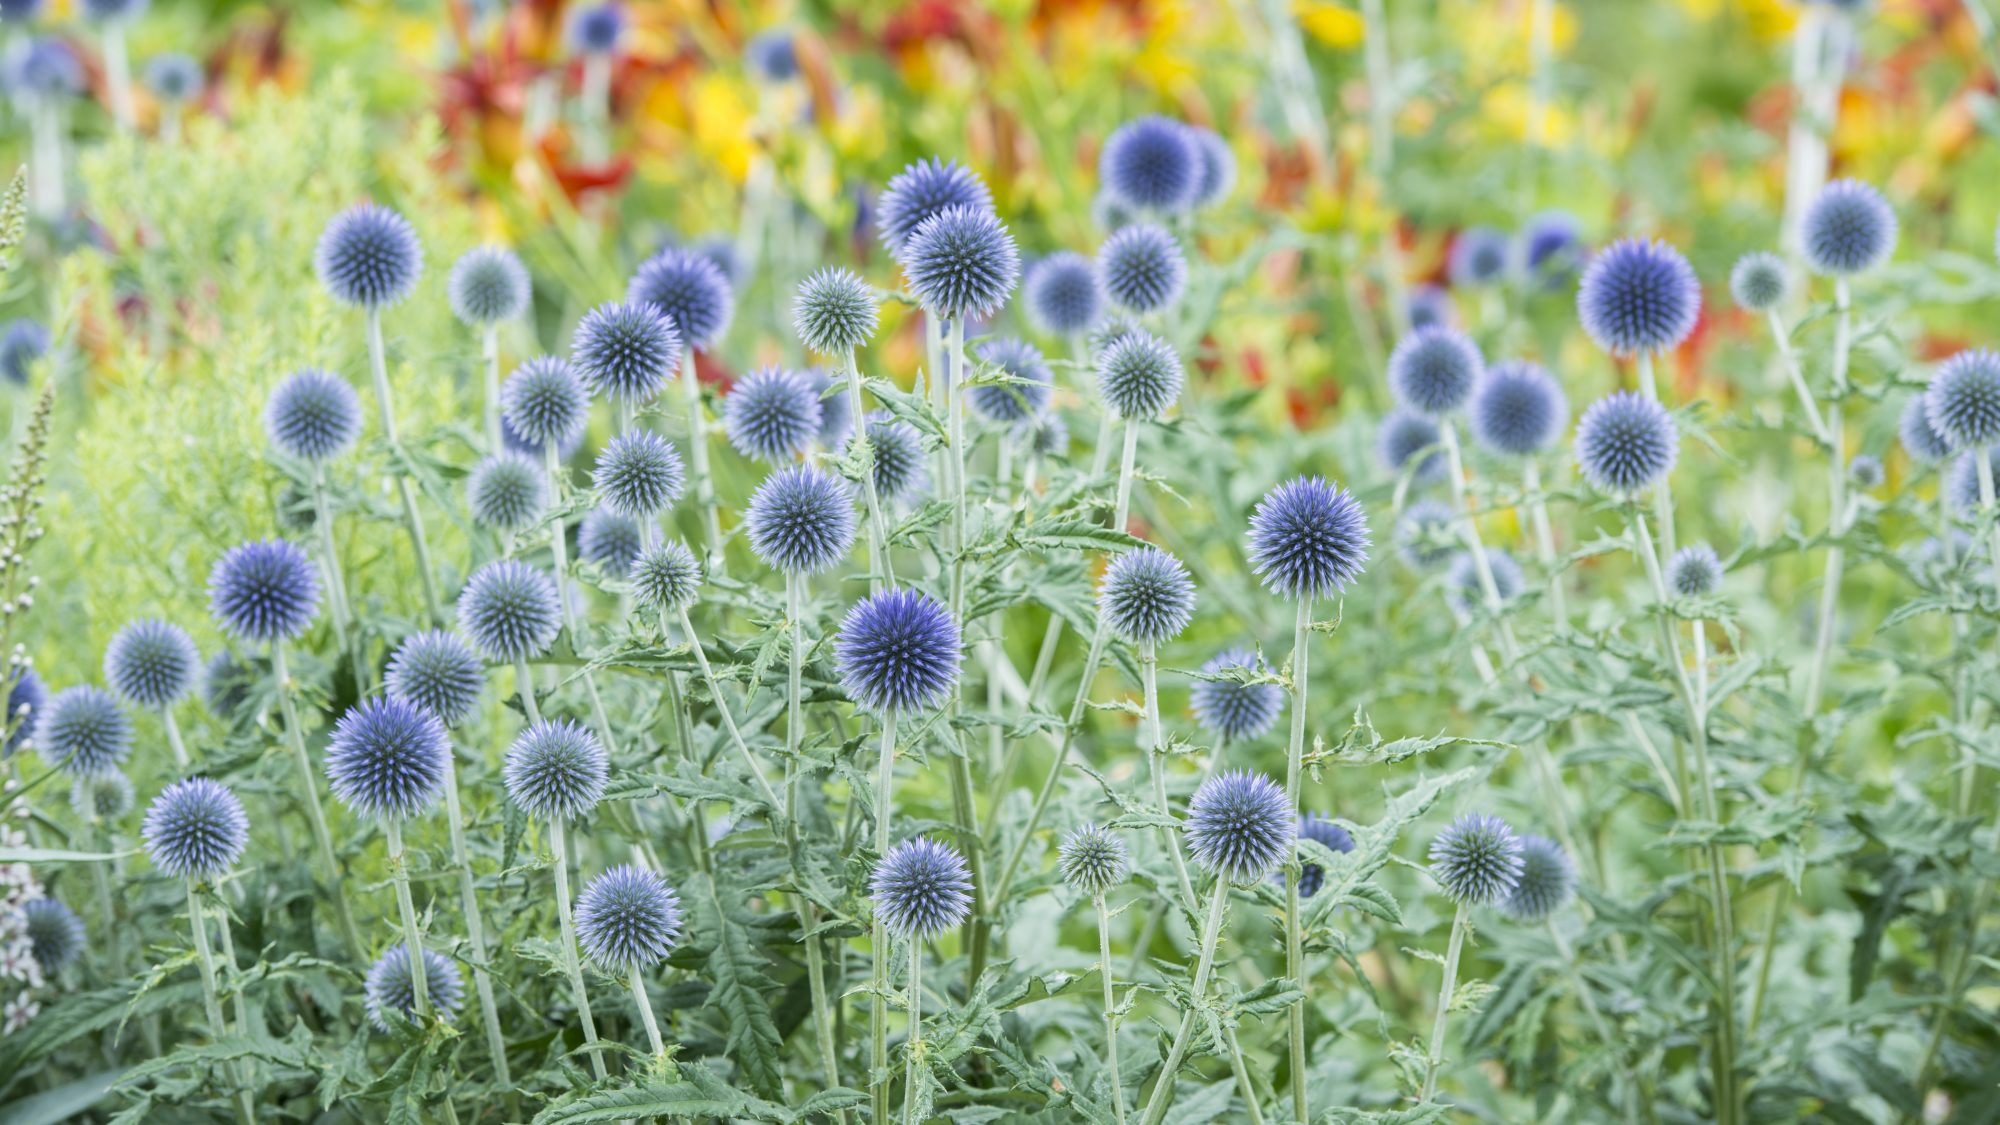 Eryngium in the dry meadow.